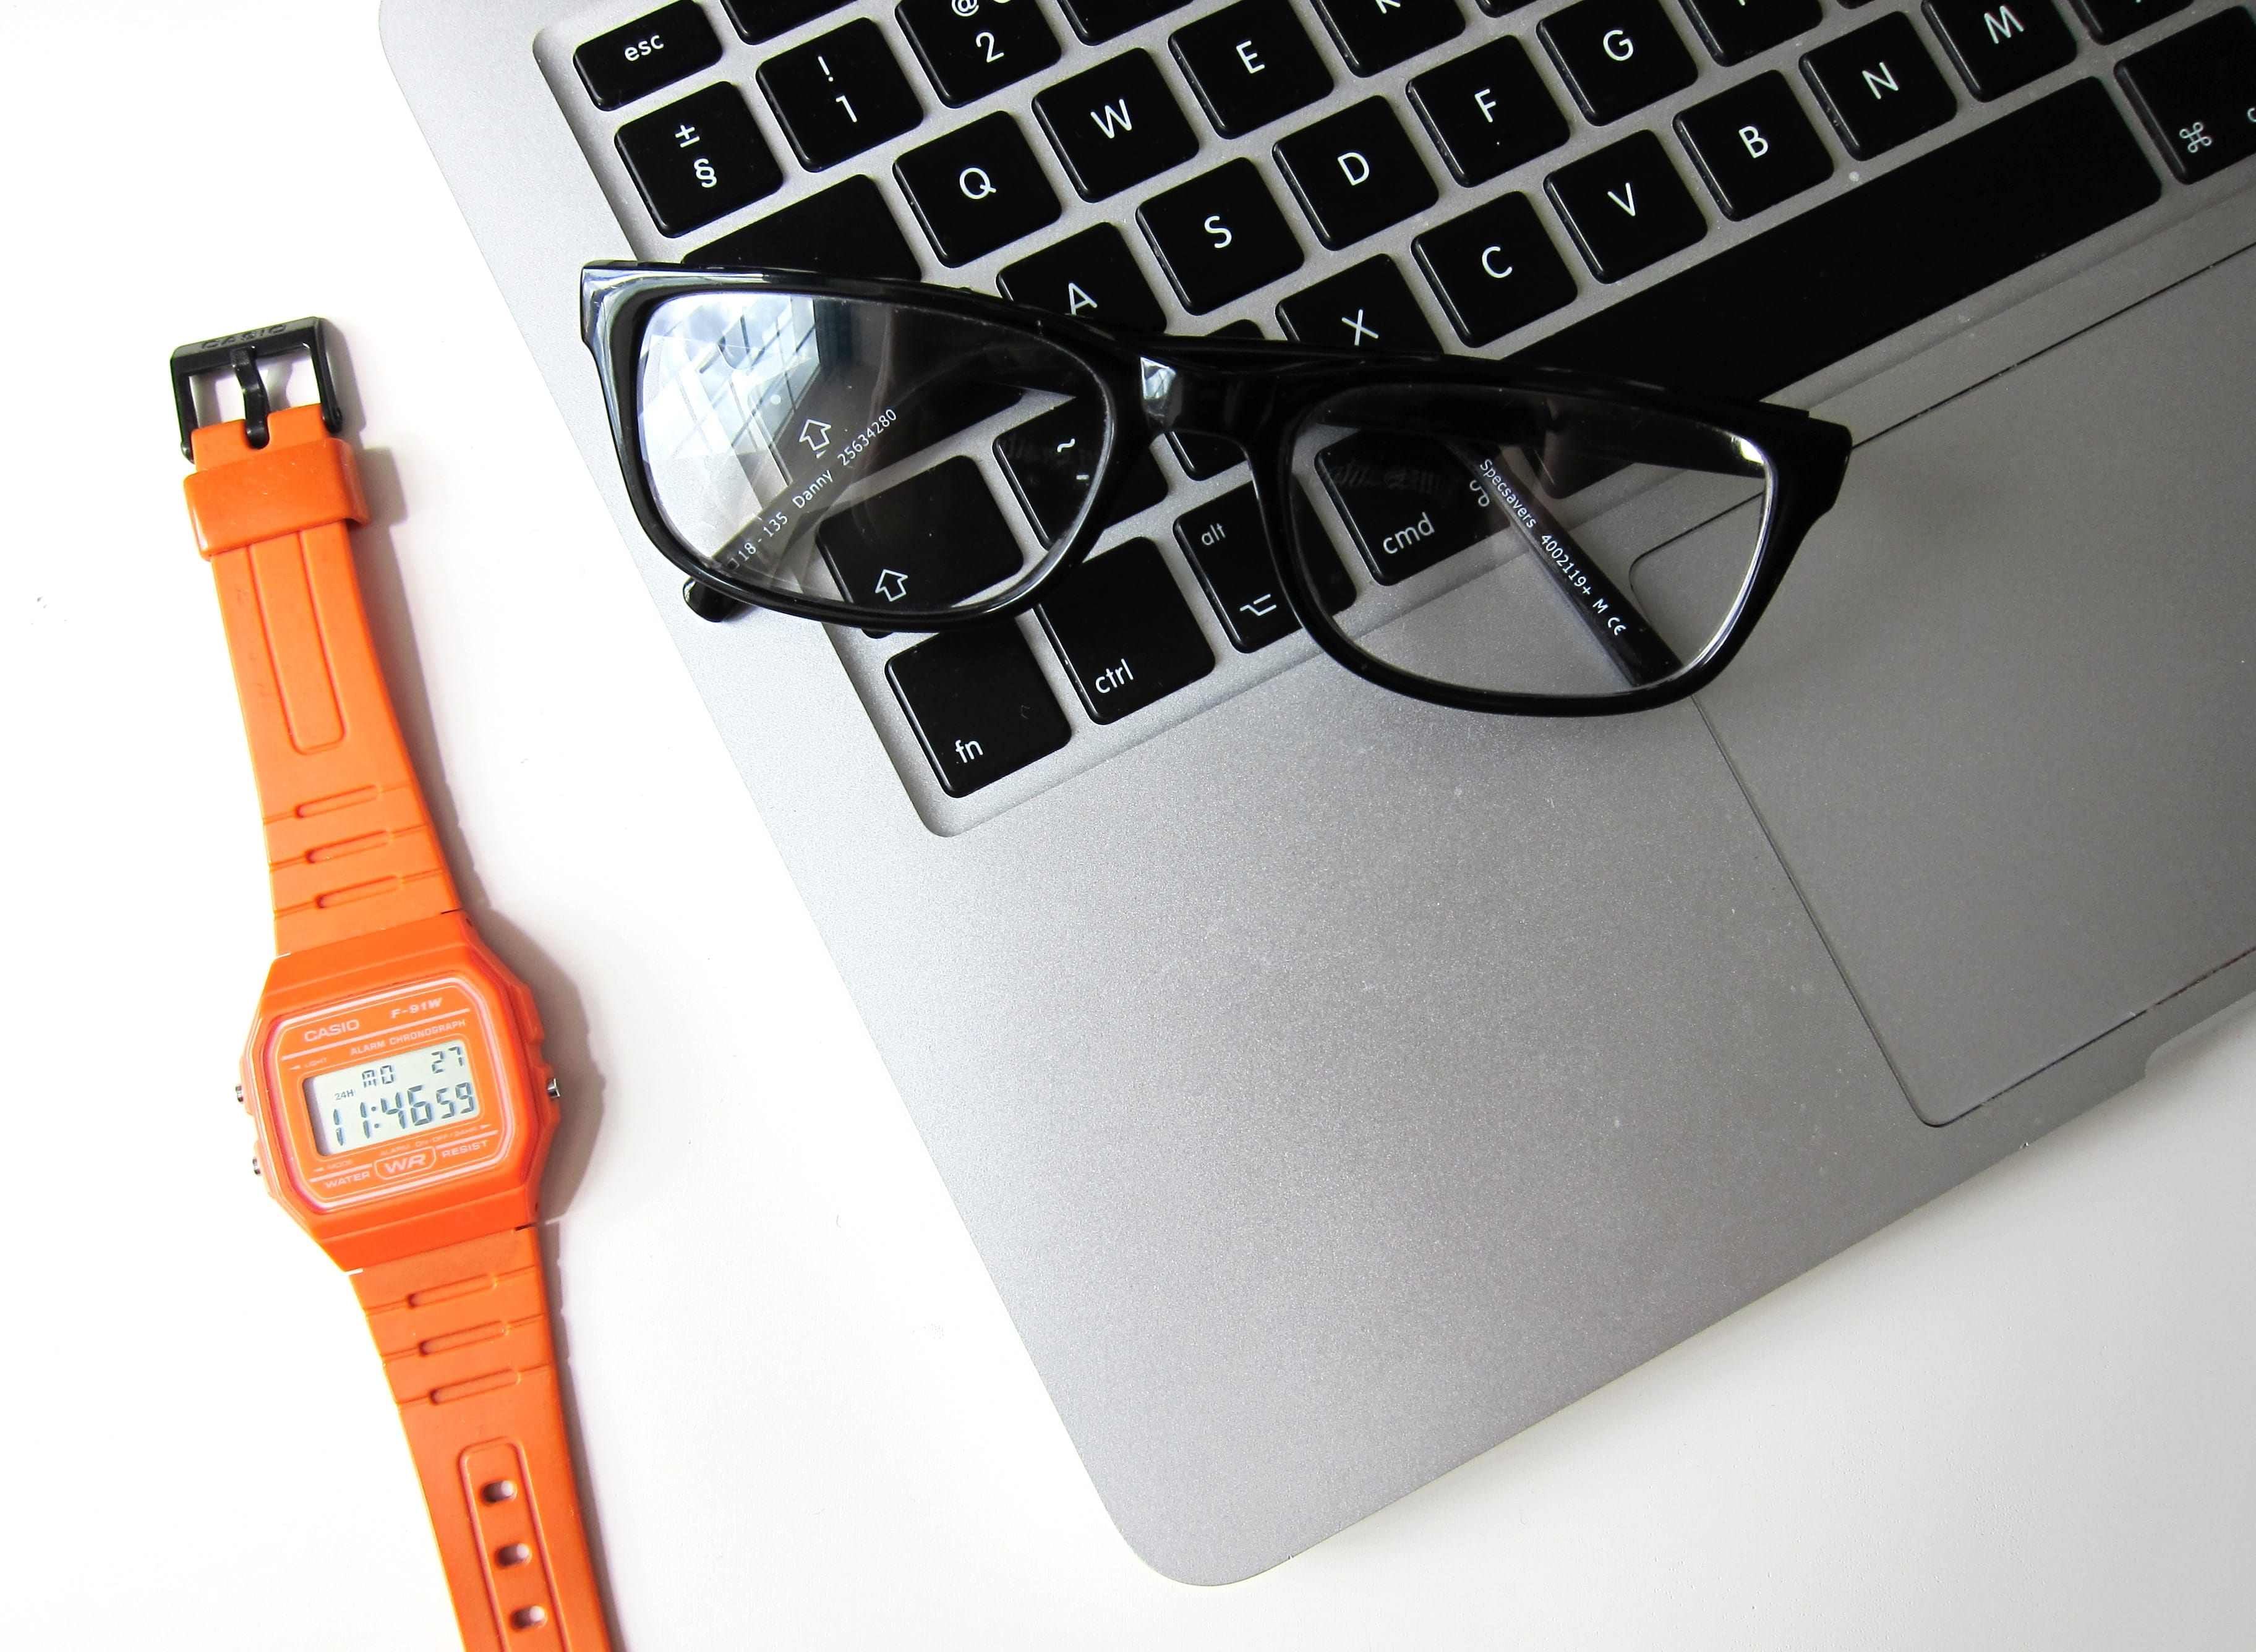 Reading glasses folded on a laptop along with a watch with orange band on a white desk; image by Hello I'm Nik, via Unsplash.com.